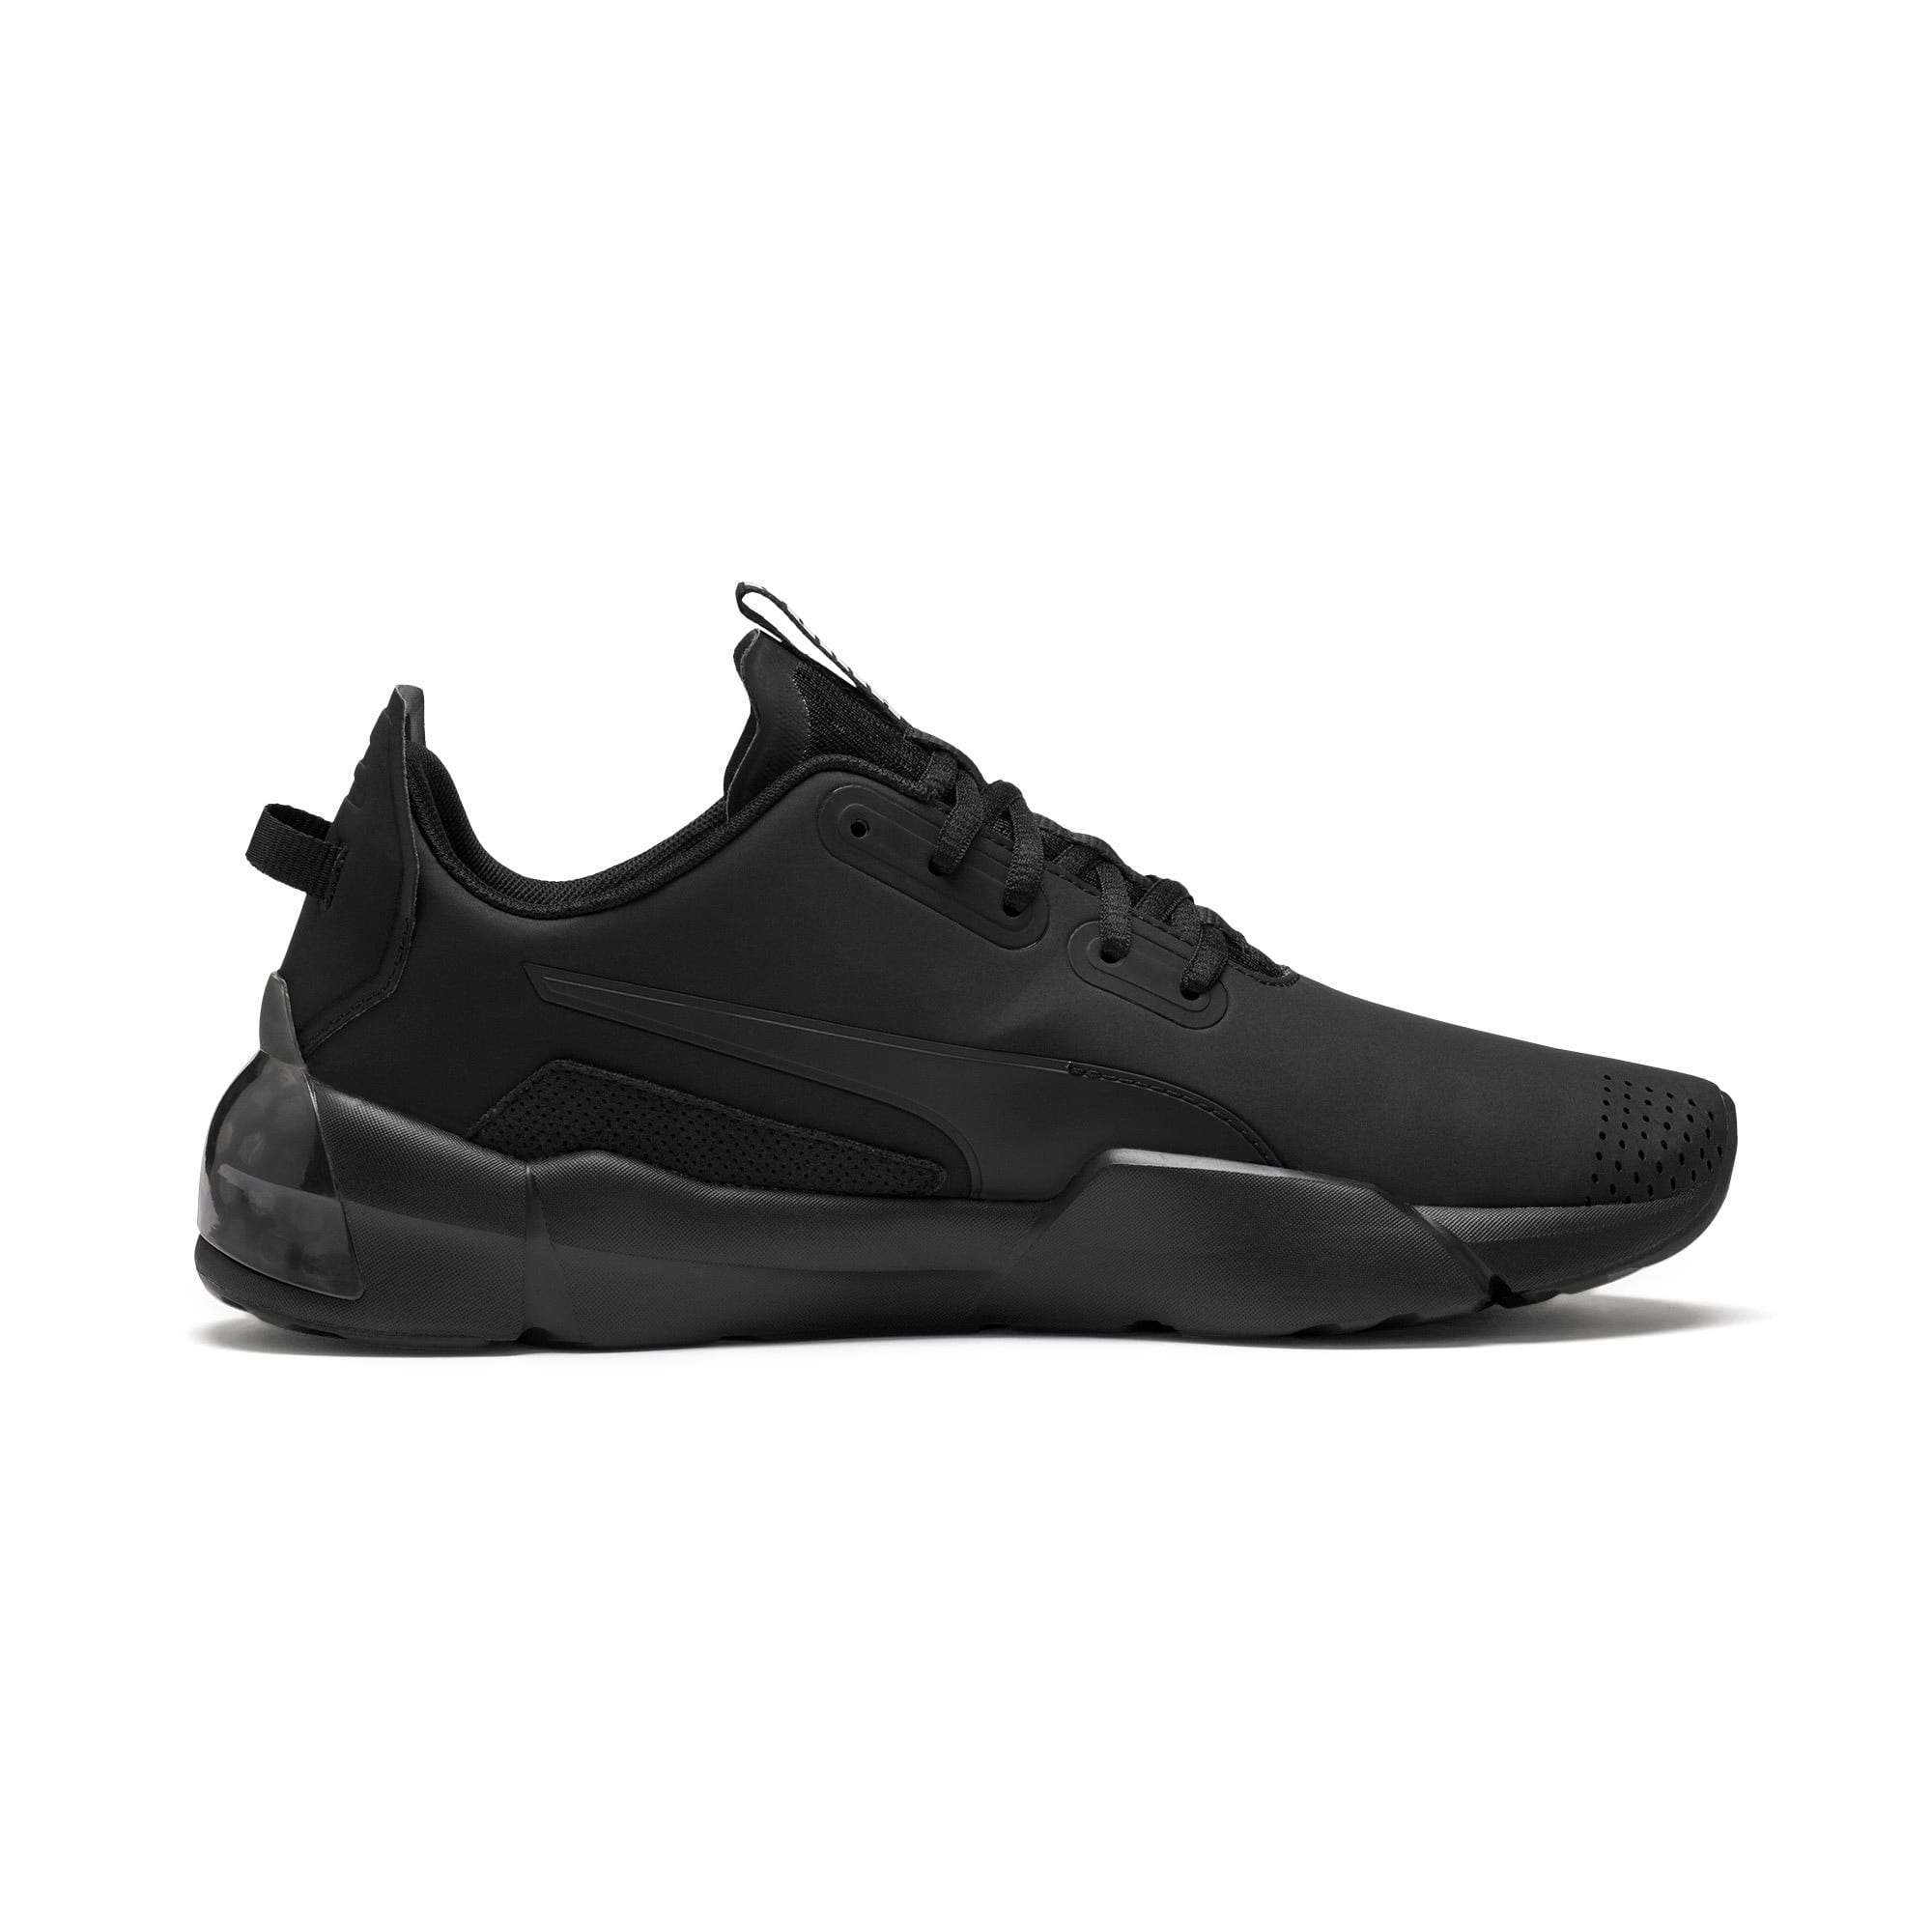 Thumbnail 6 of CELL Phase Men's Training Shoes, Puma Black-CASTLEROCK, medium